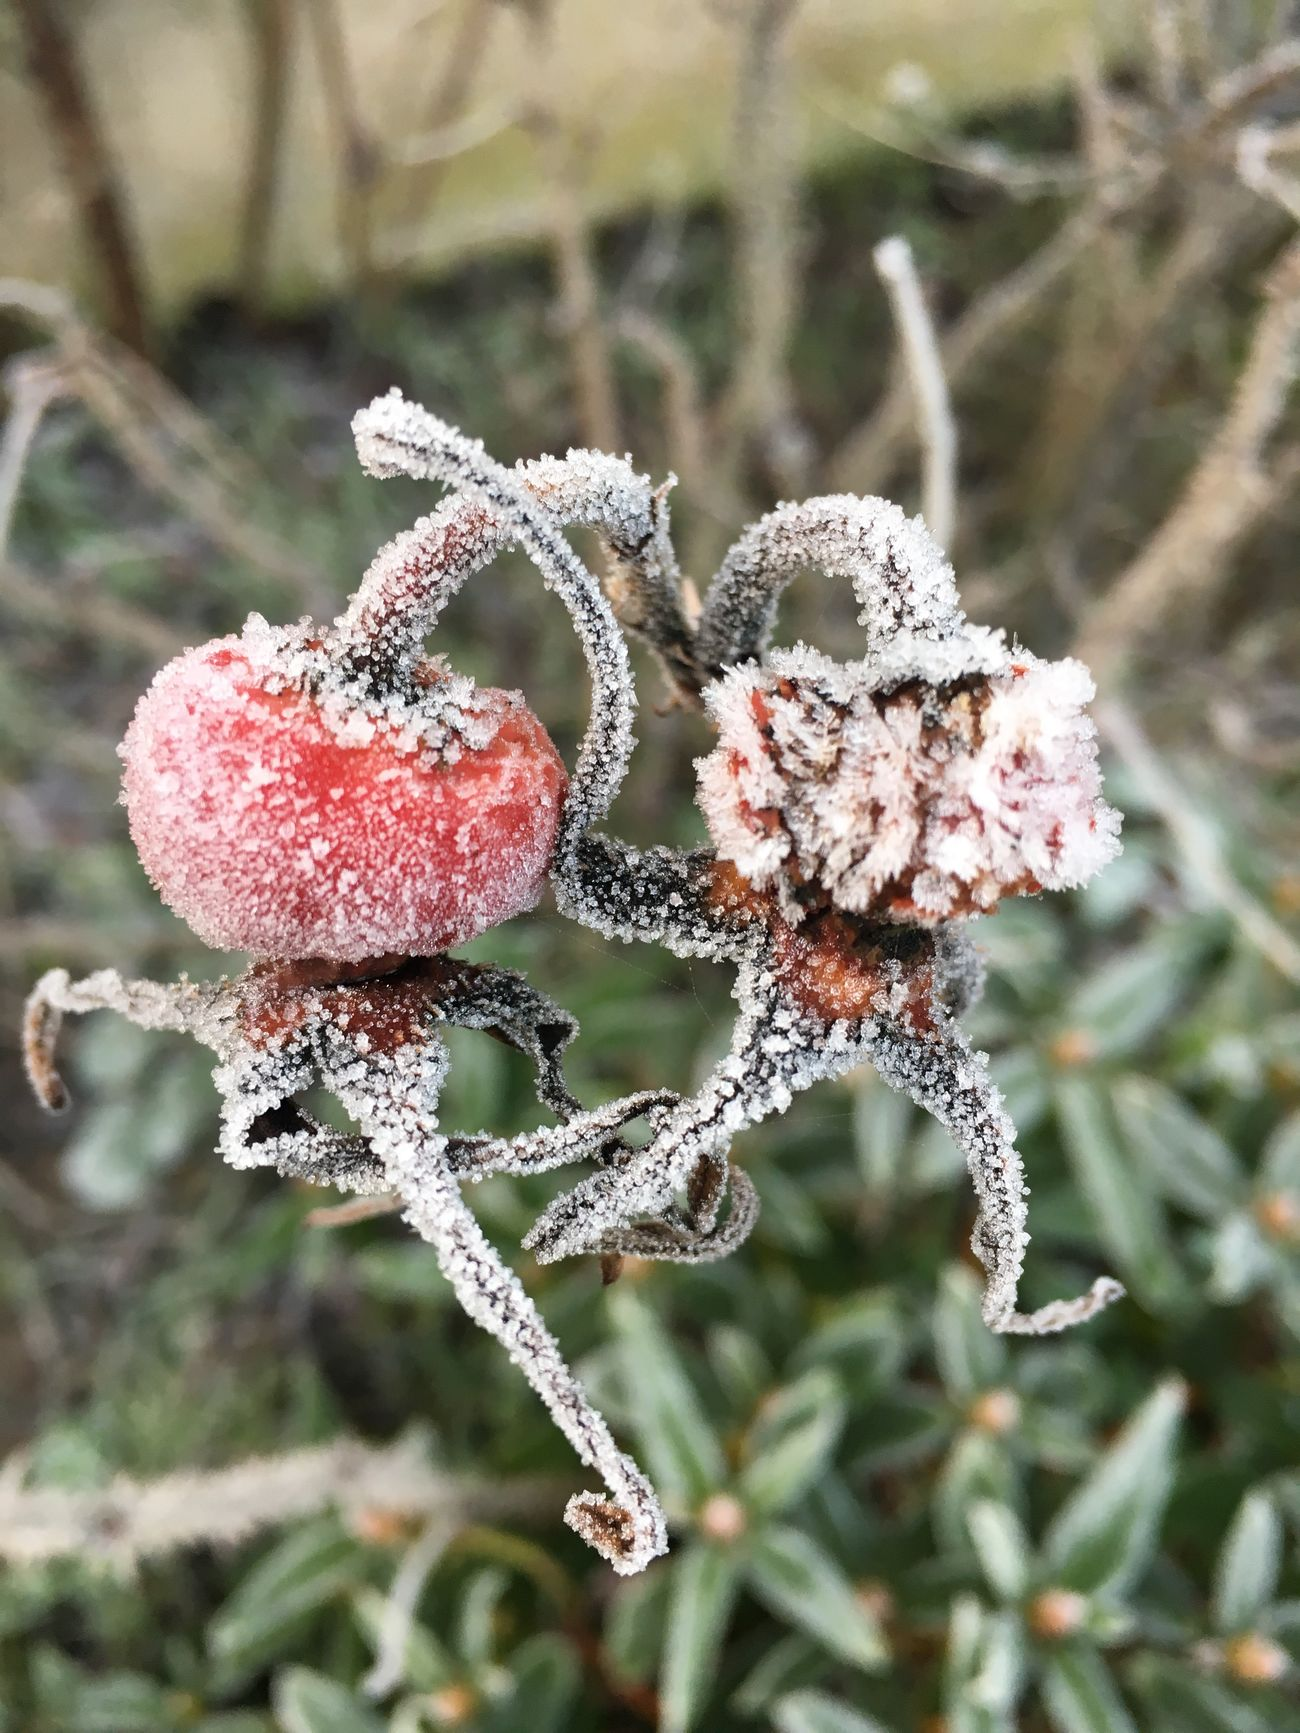 Garden Flowers,Plants & Garden Rose Hips Frosty Mornings Wintertime Cold Temperature Icy Day